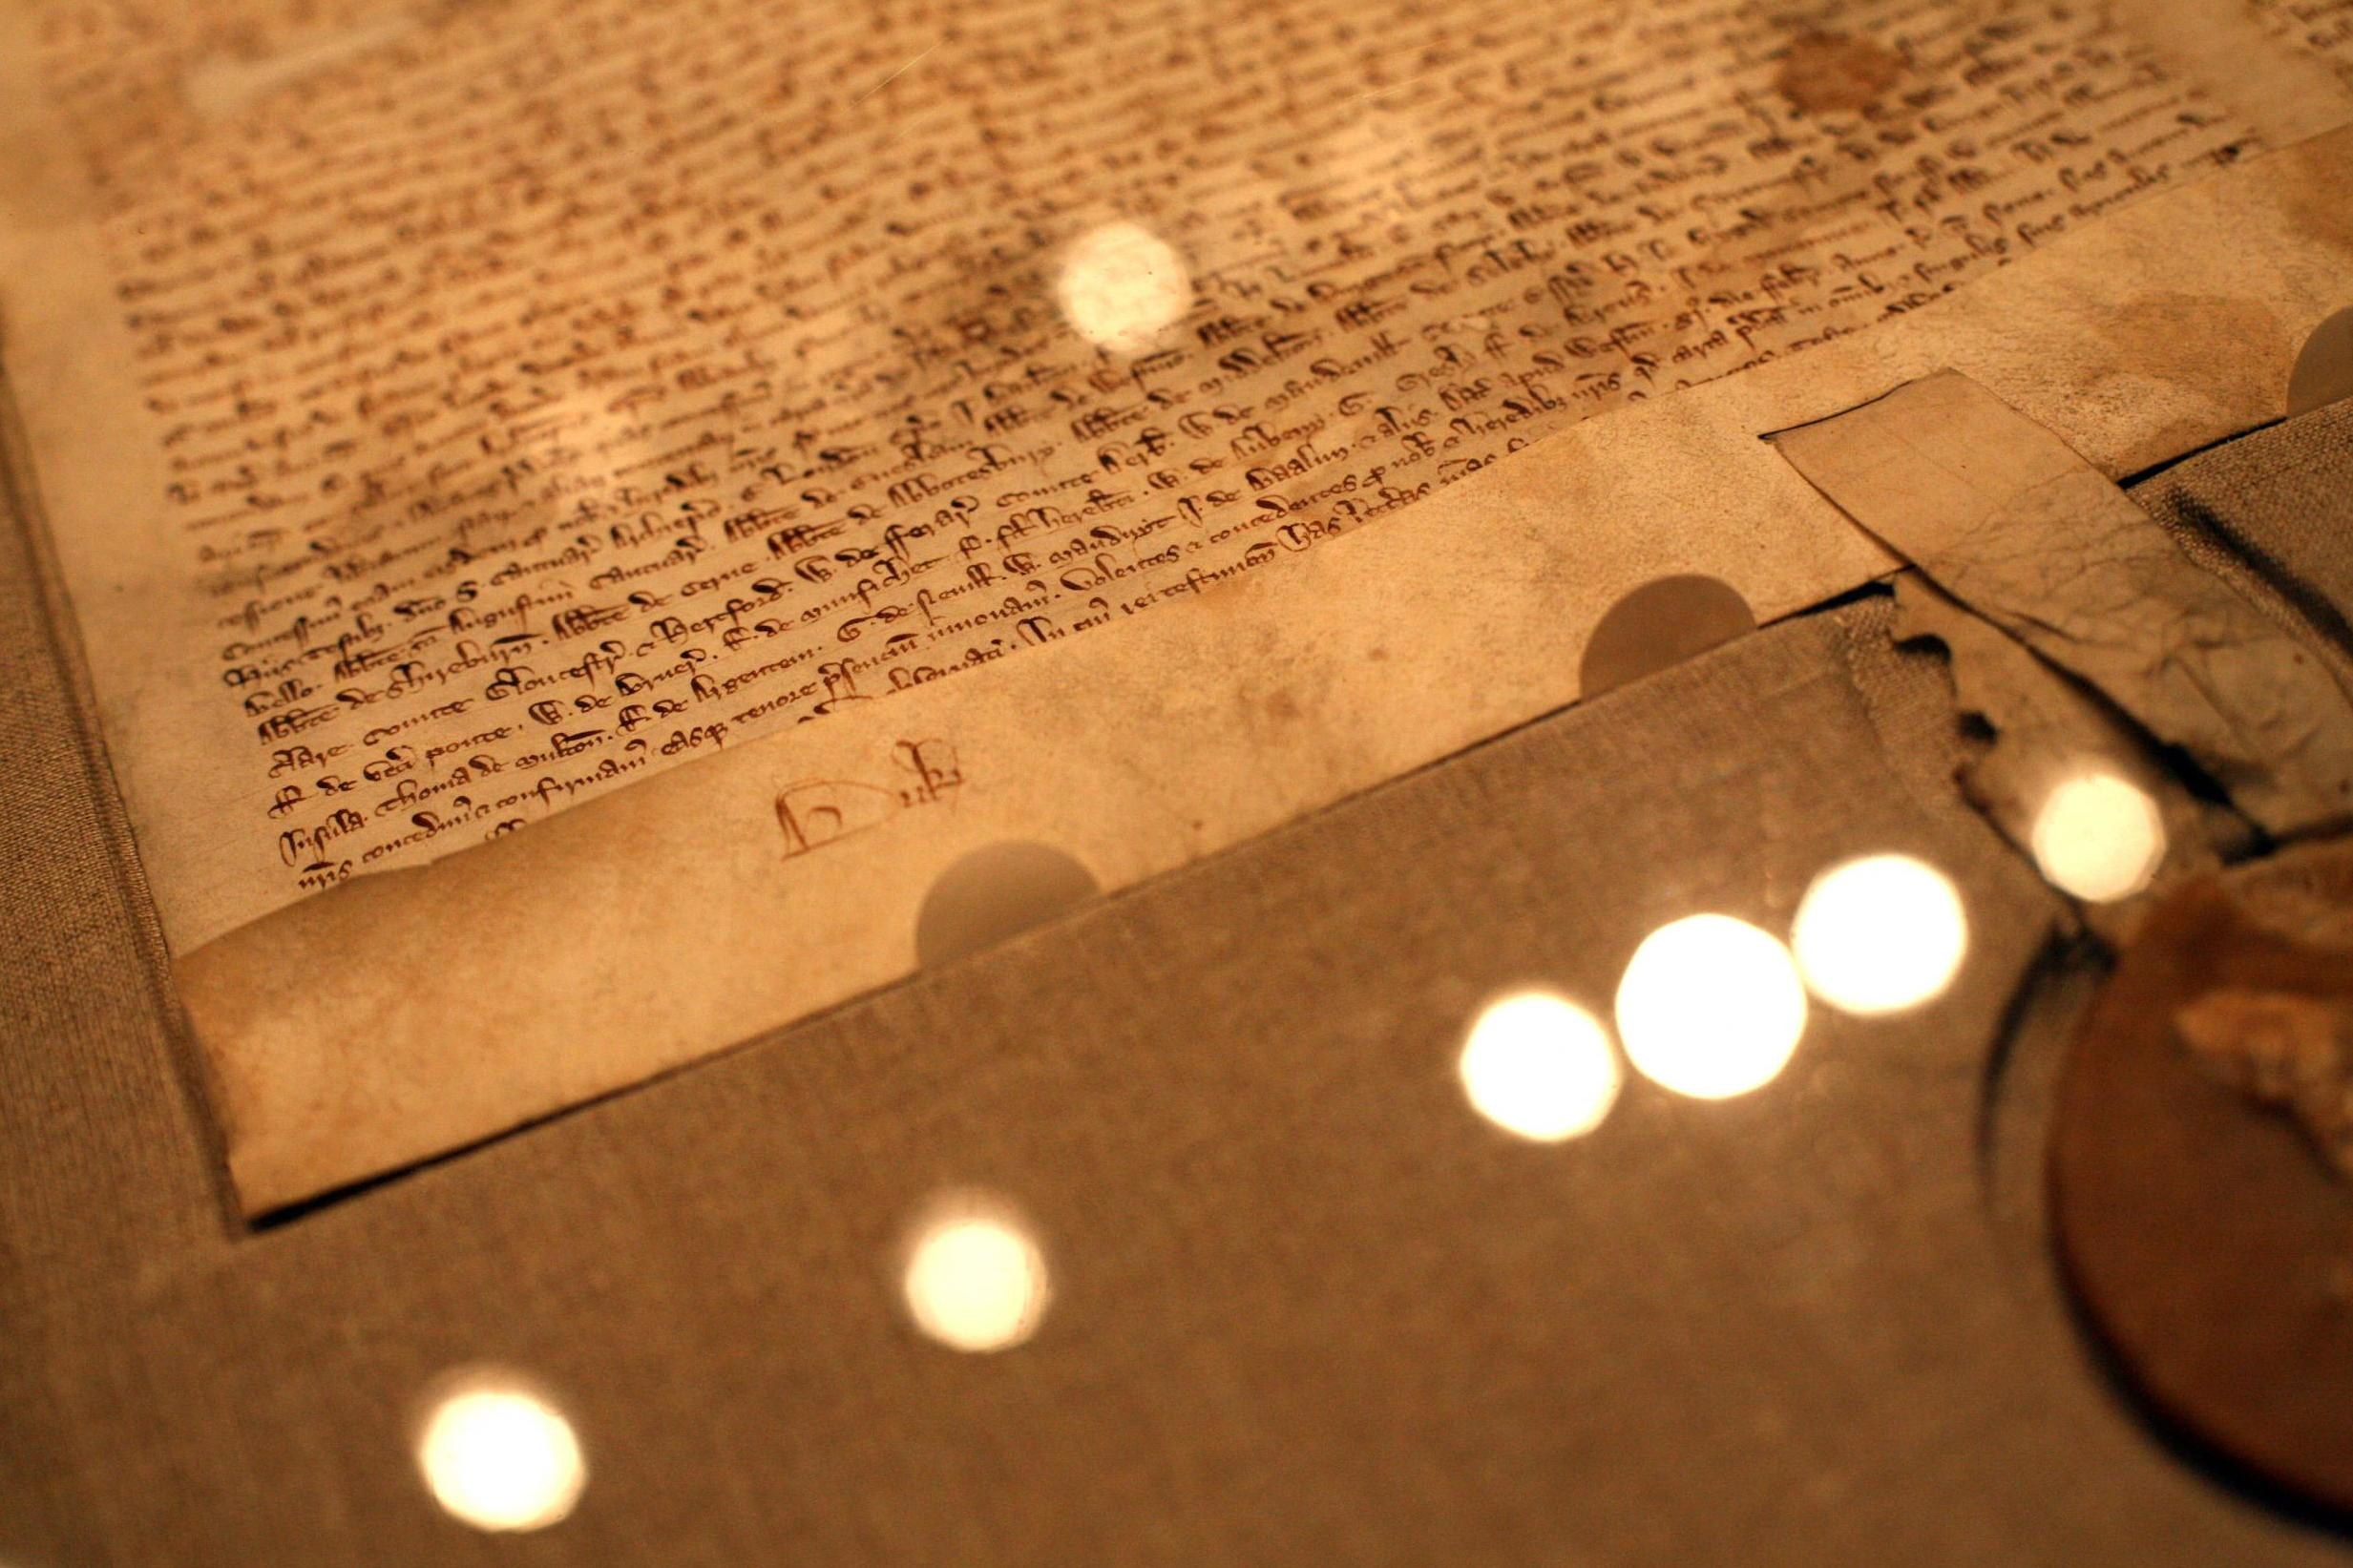 Outrage as town proposes selling its Magna Carta for £20m to fund office refurbishments